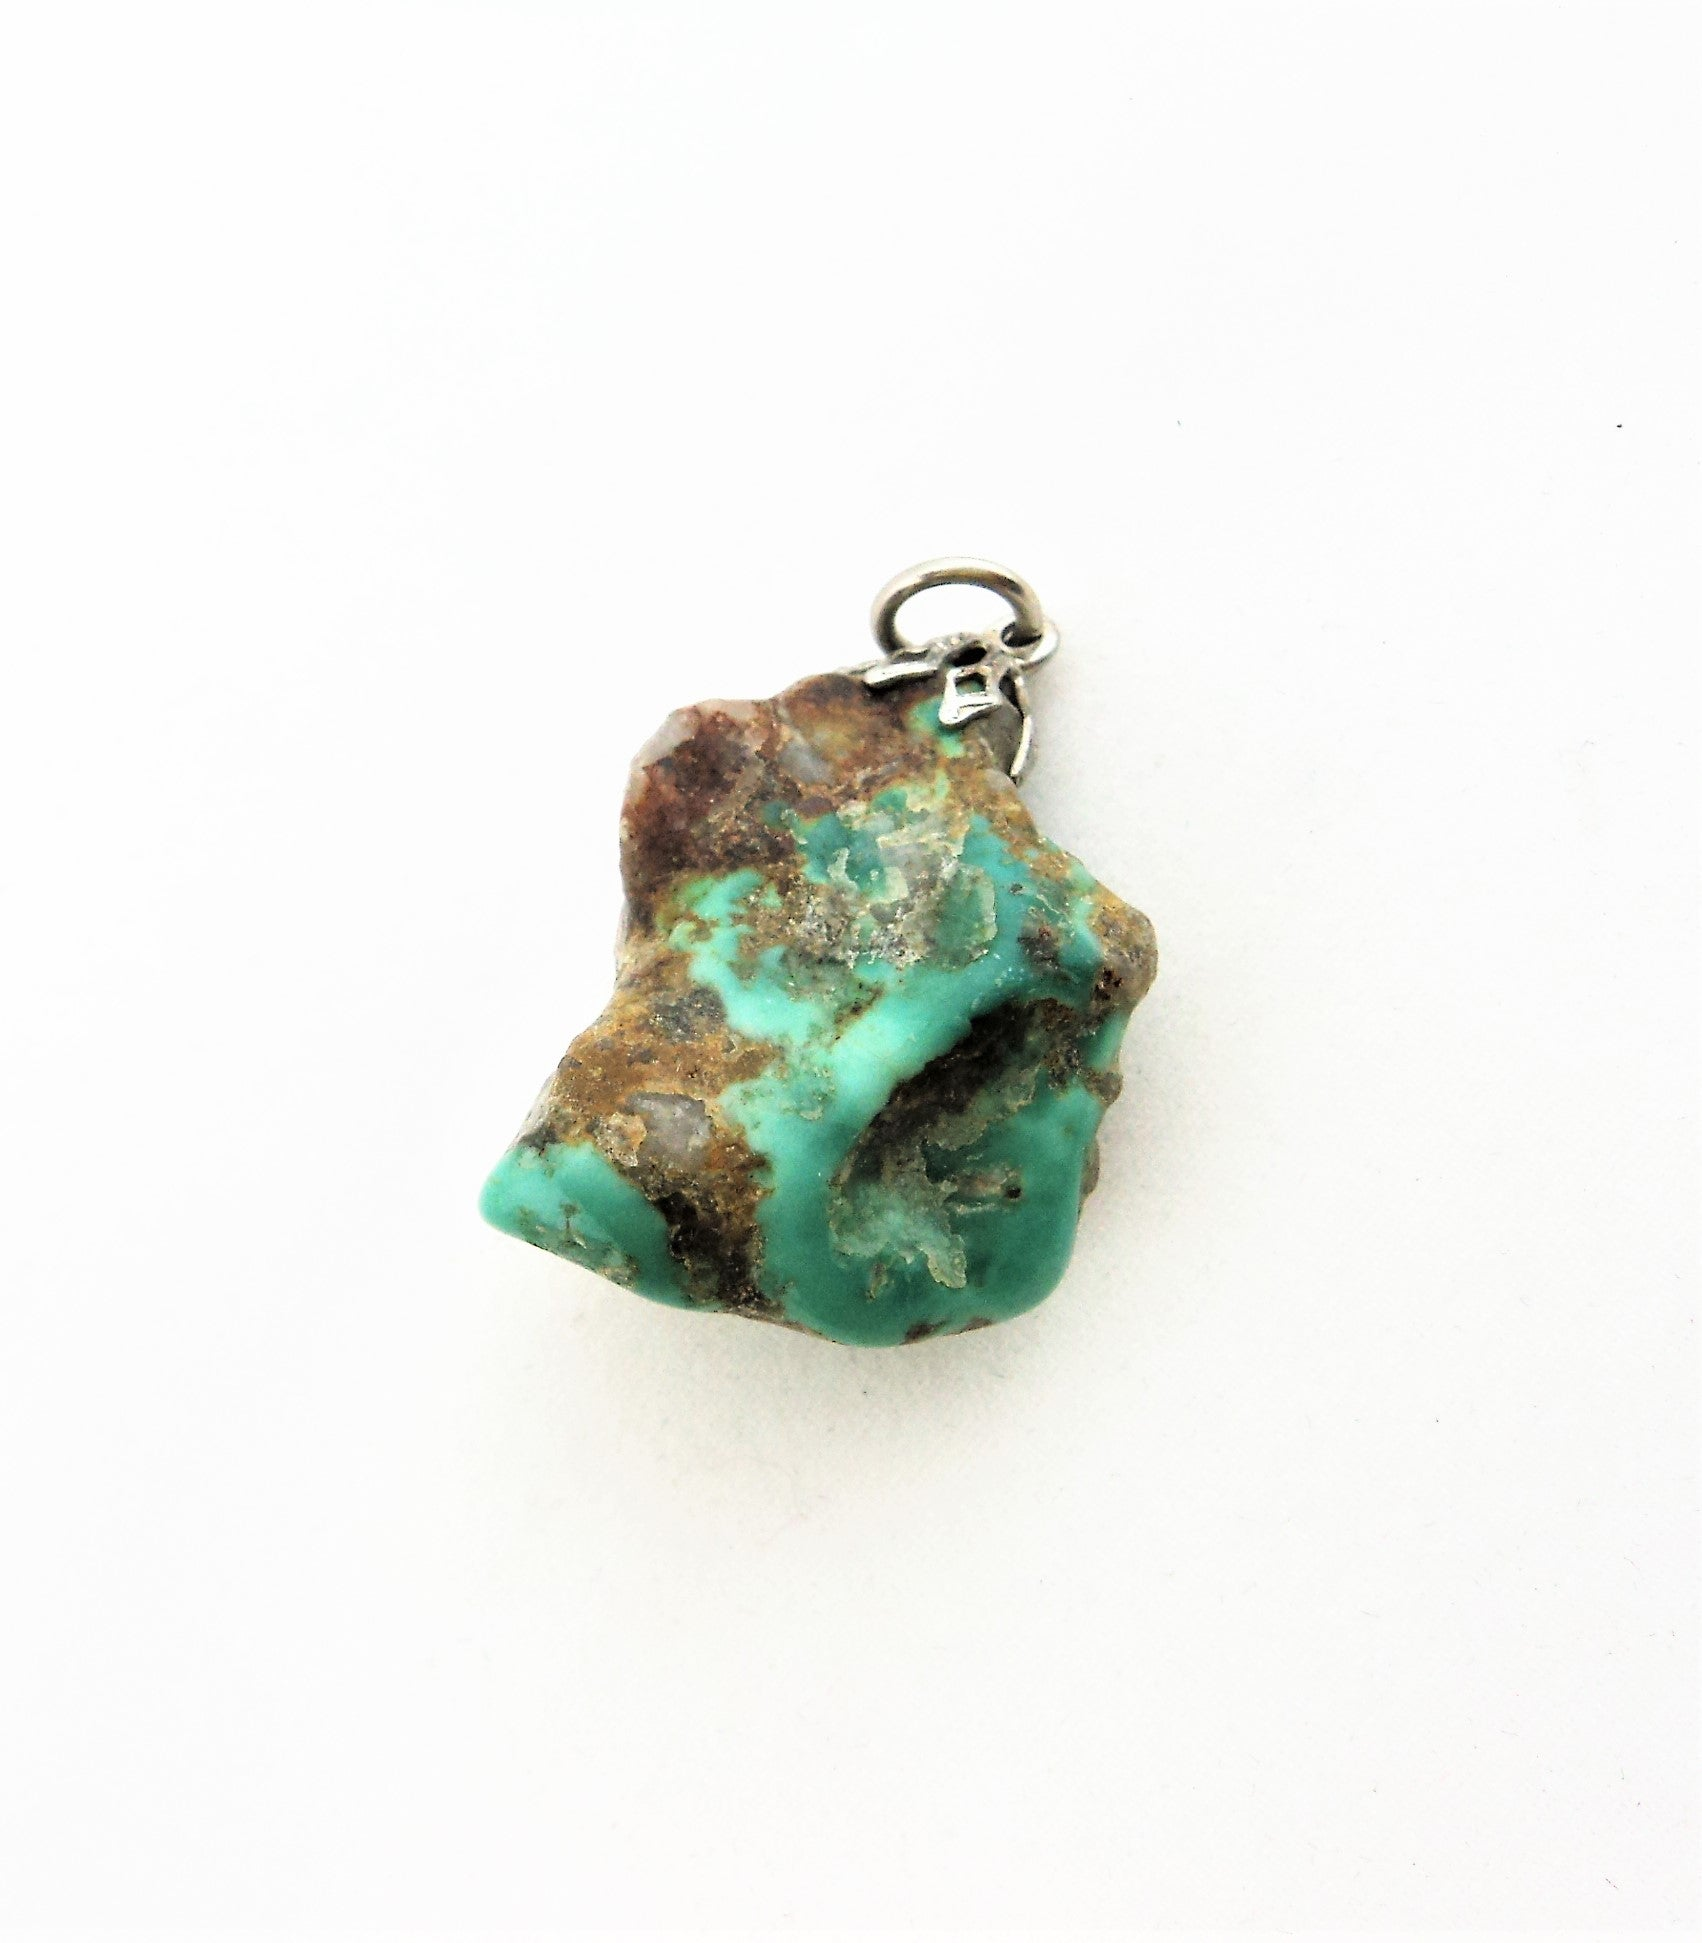 Turquoise Nugget Pendant